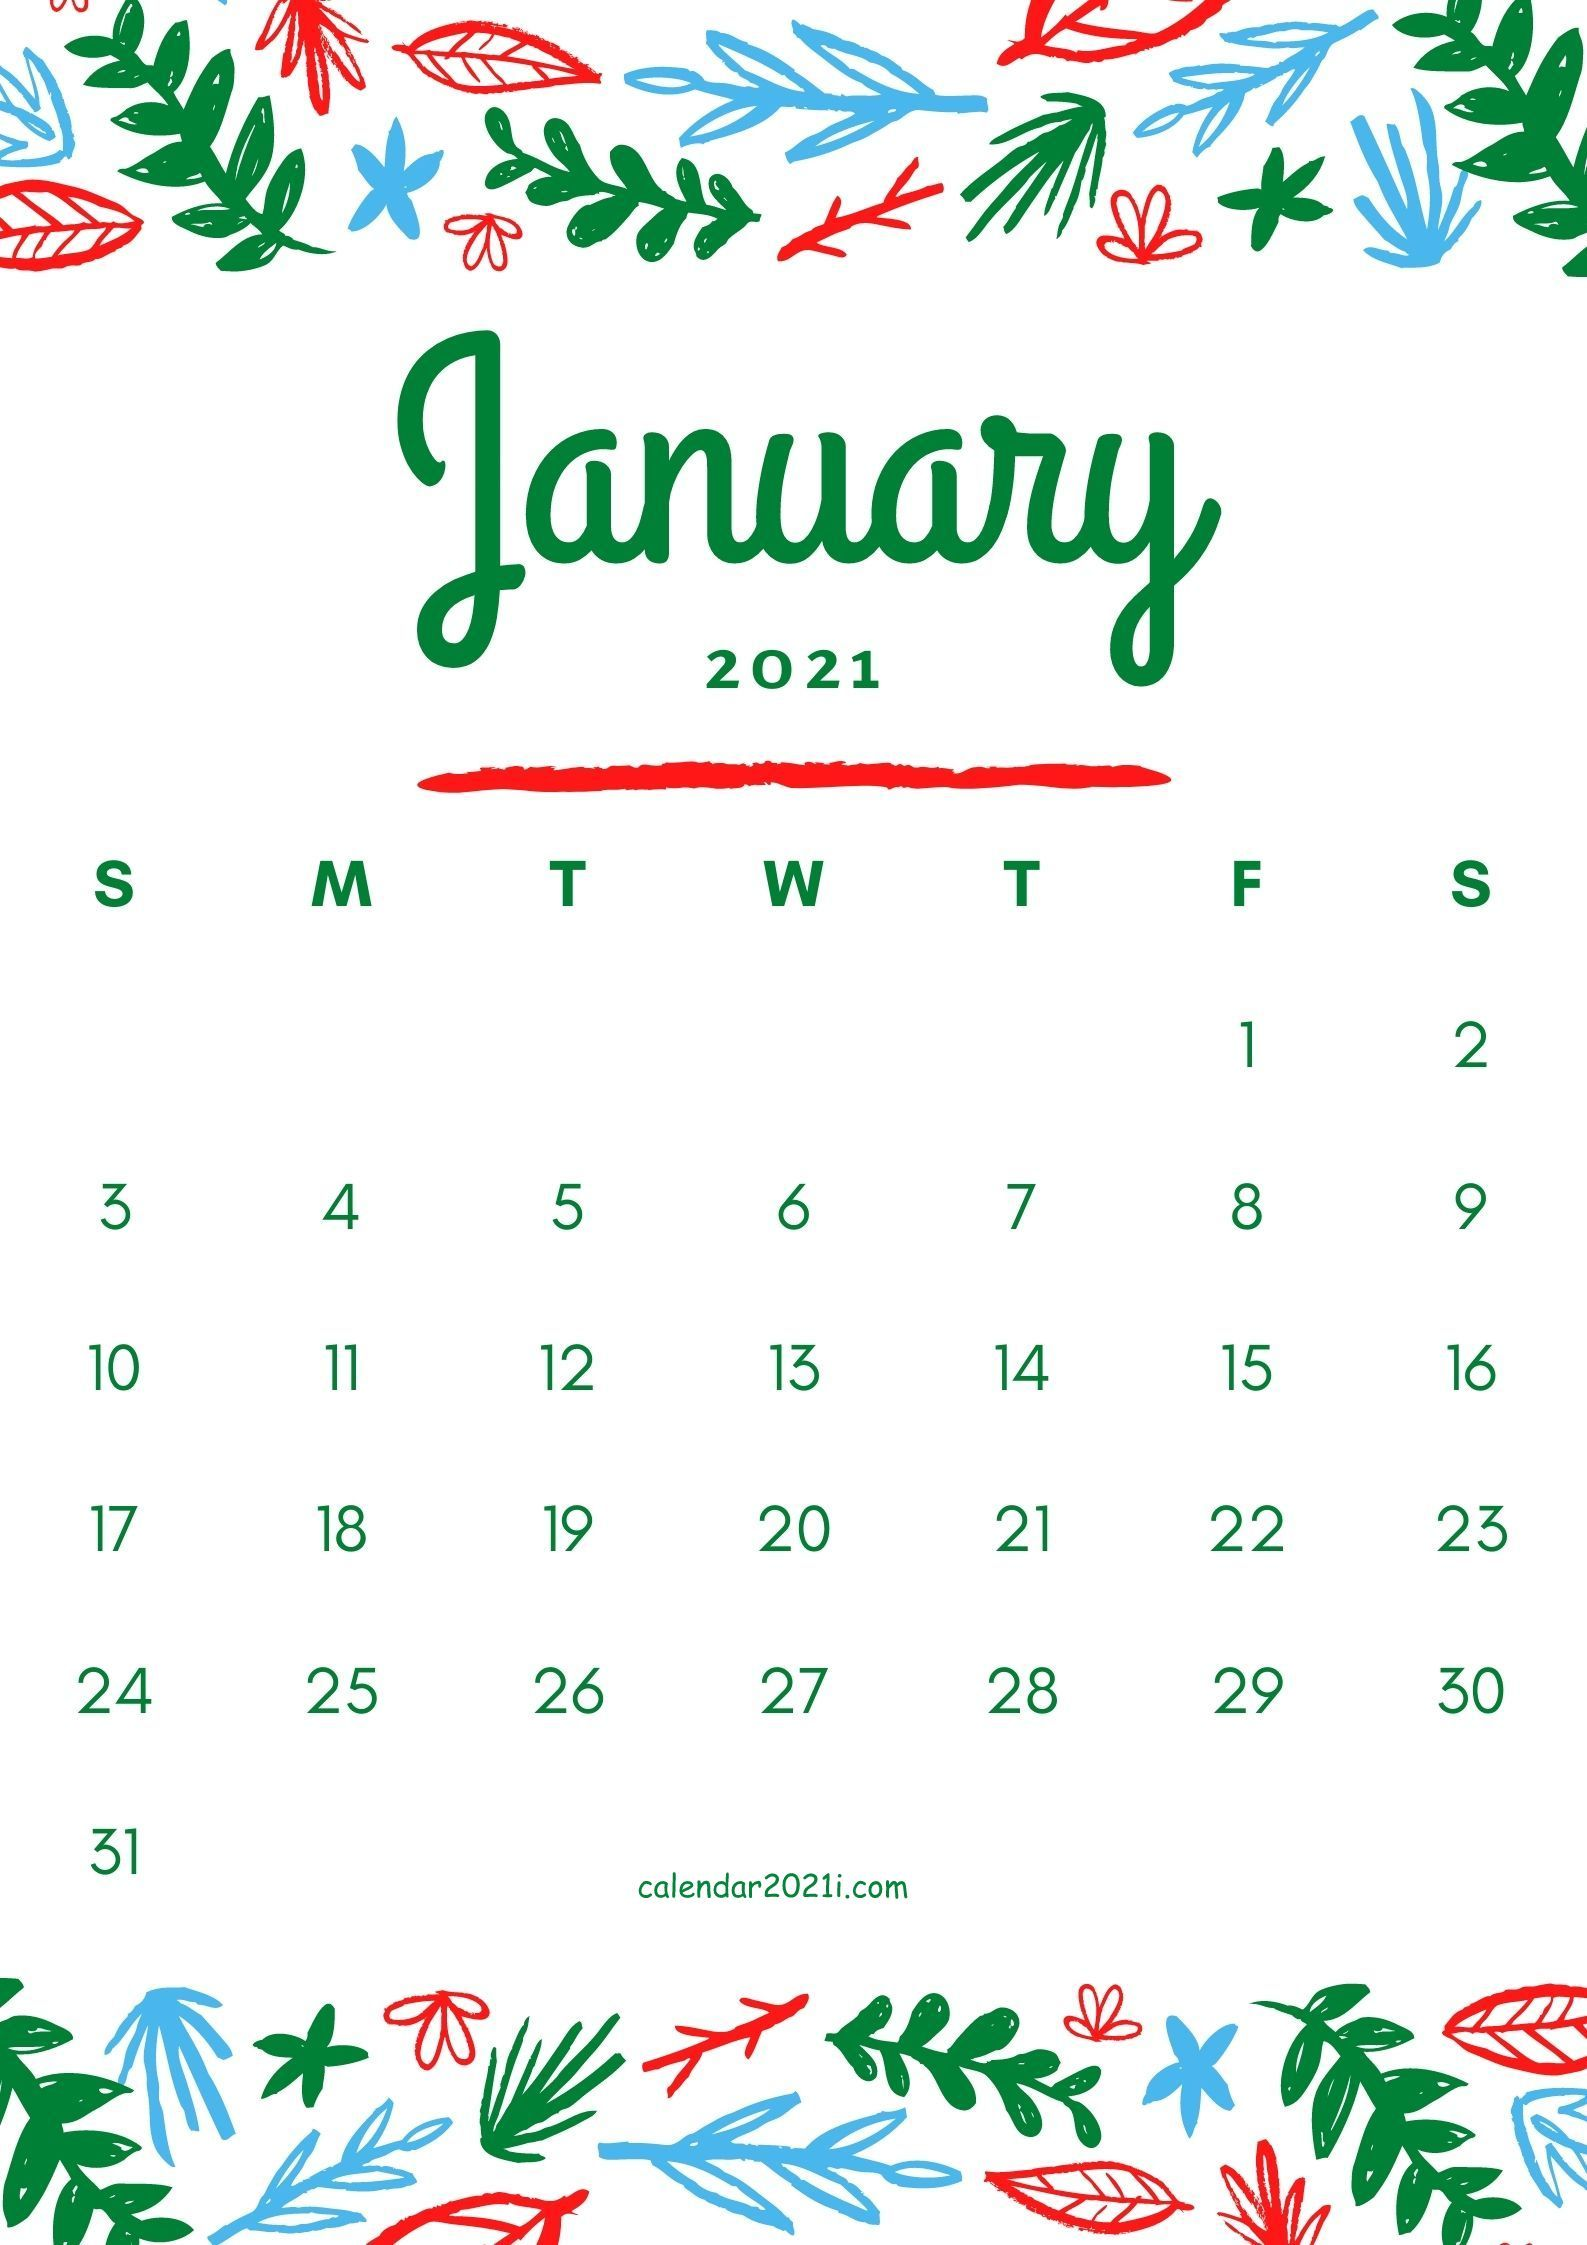 Run the jewels 3, the return of director ben affleck and season 2 of full frontal are just some of what's coming. January 2021 floral calendar printable template free ...